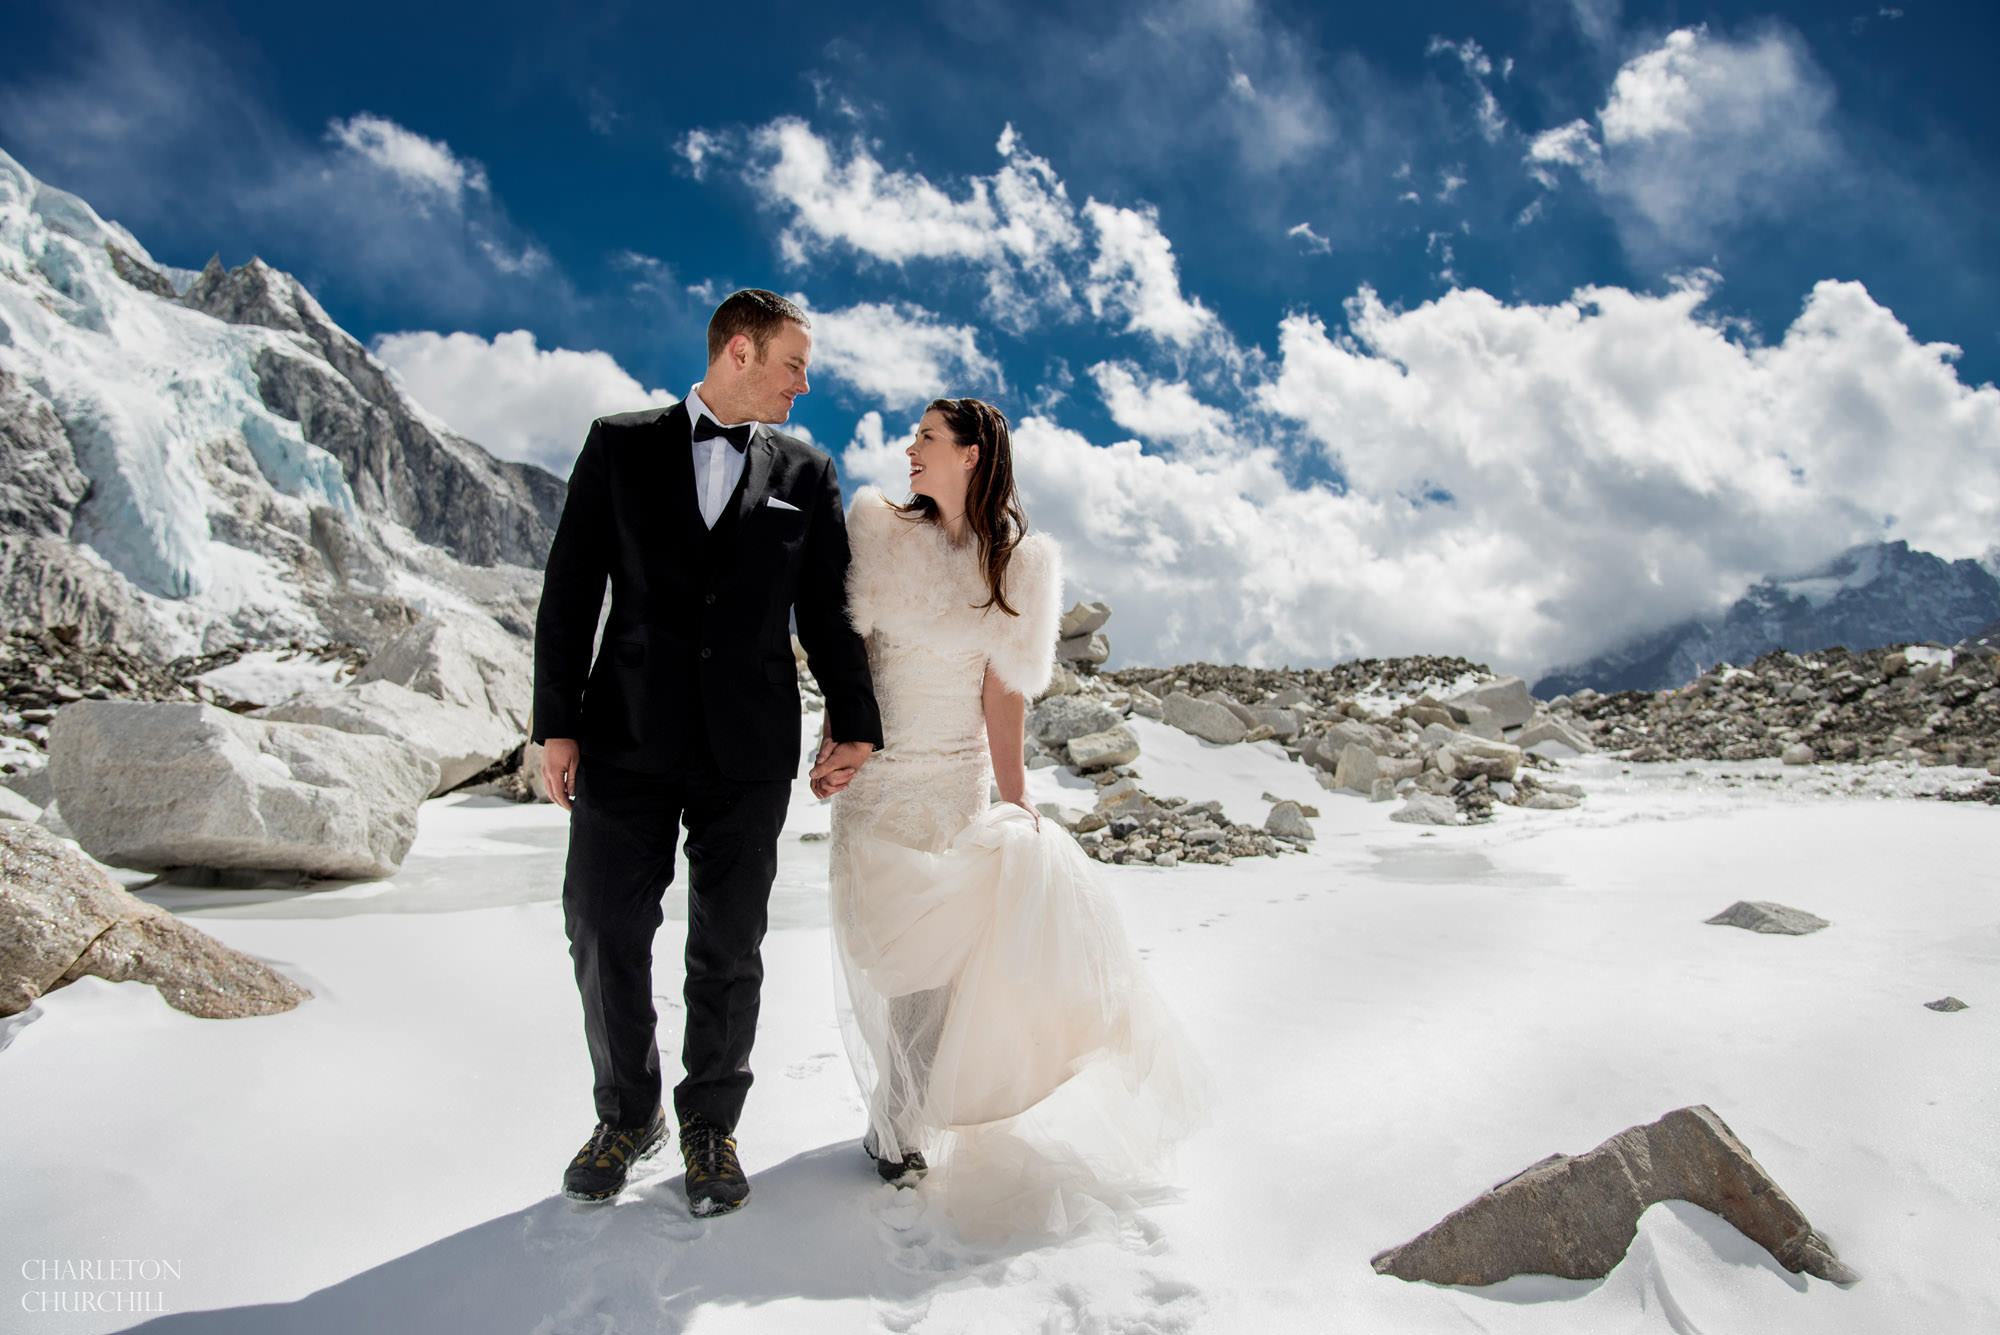 adventure wedding photography at mt everest with couple in the snow